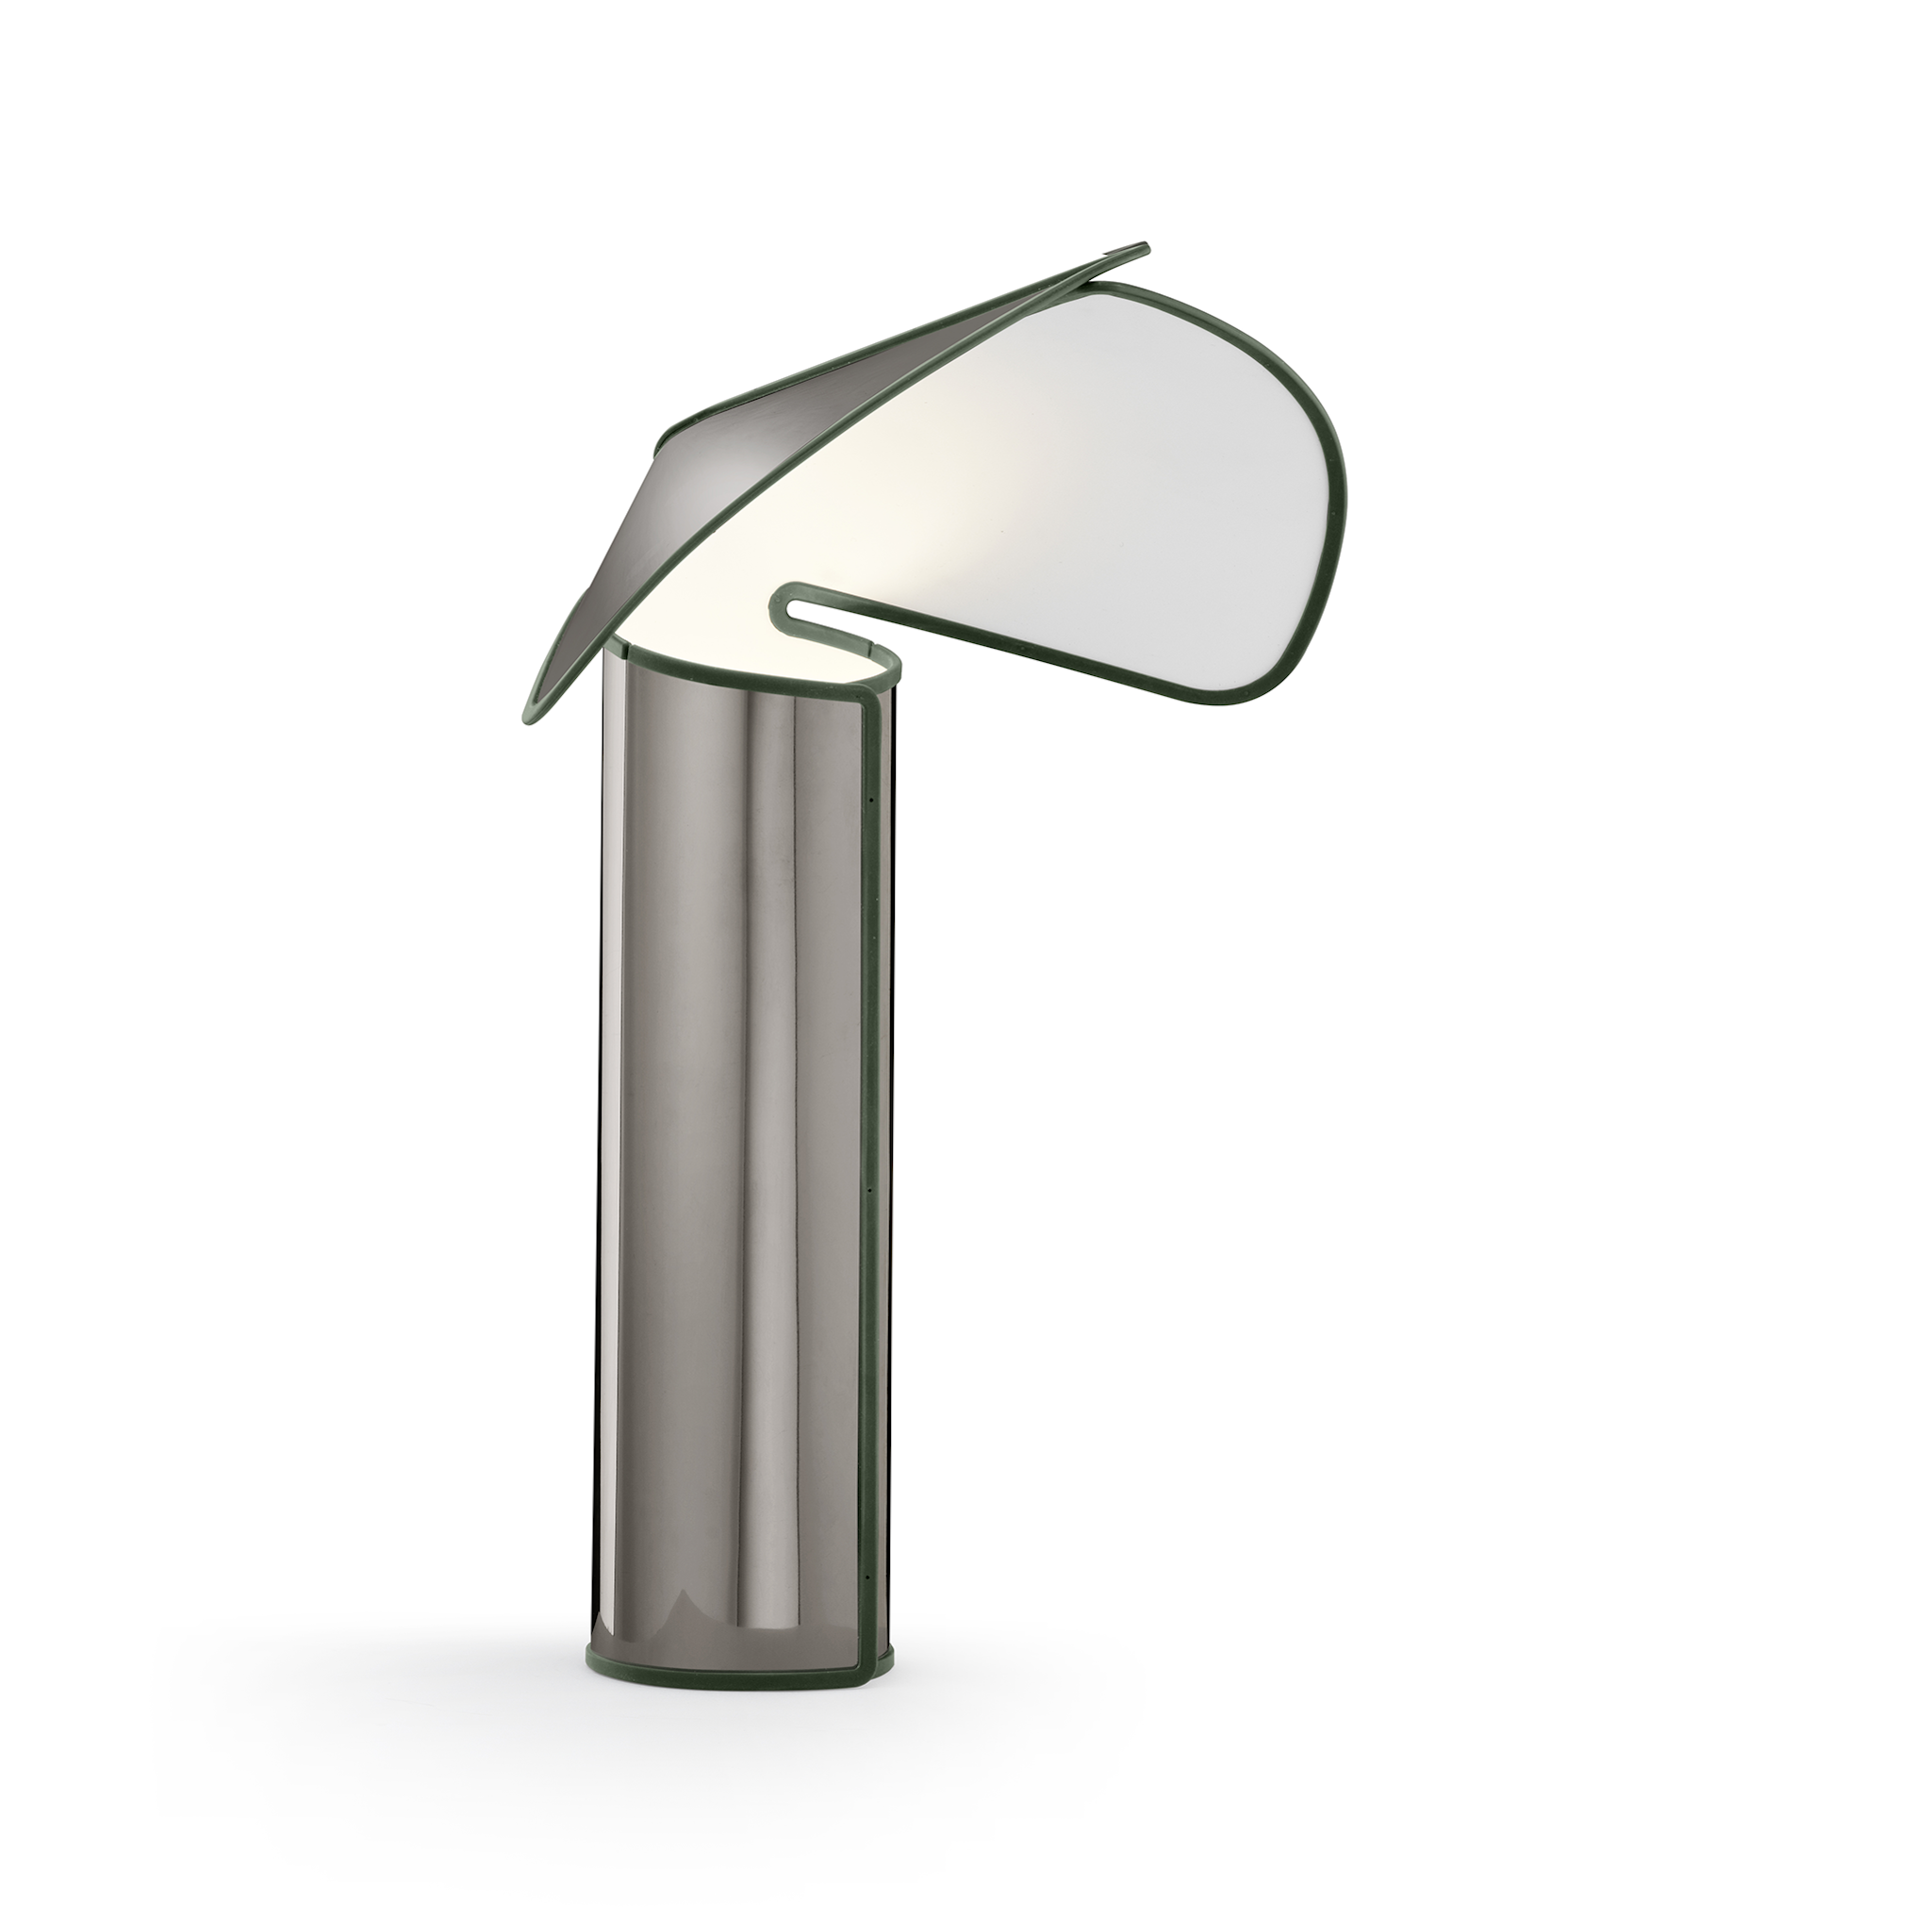 Chiara Table Lamp by Mario Bellini for Flos